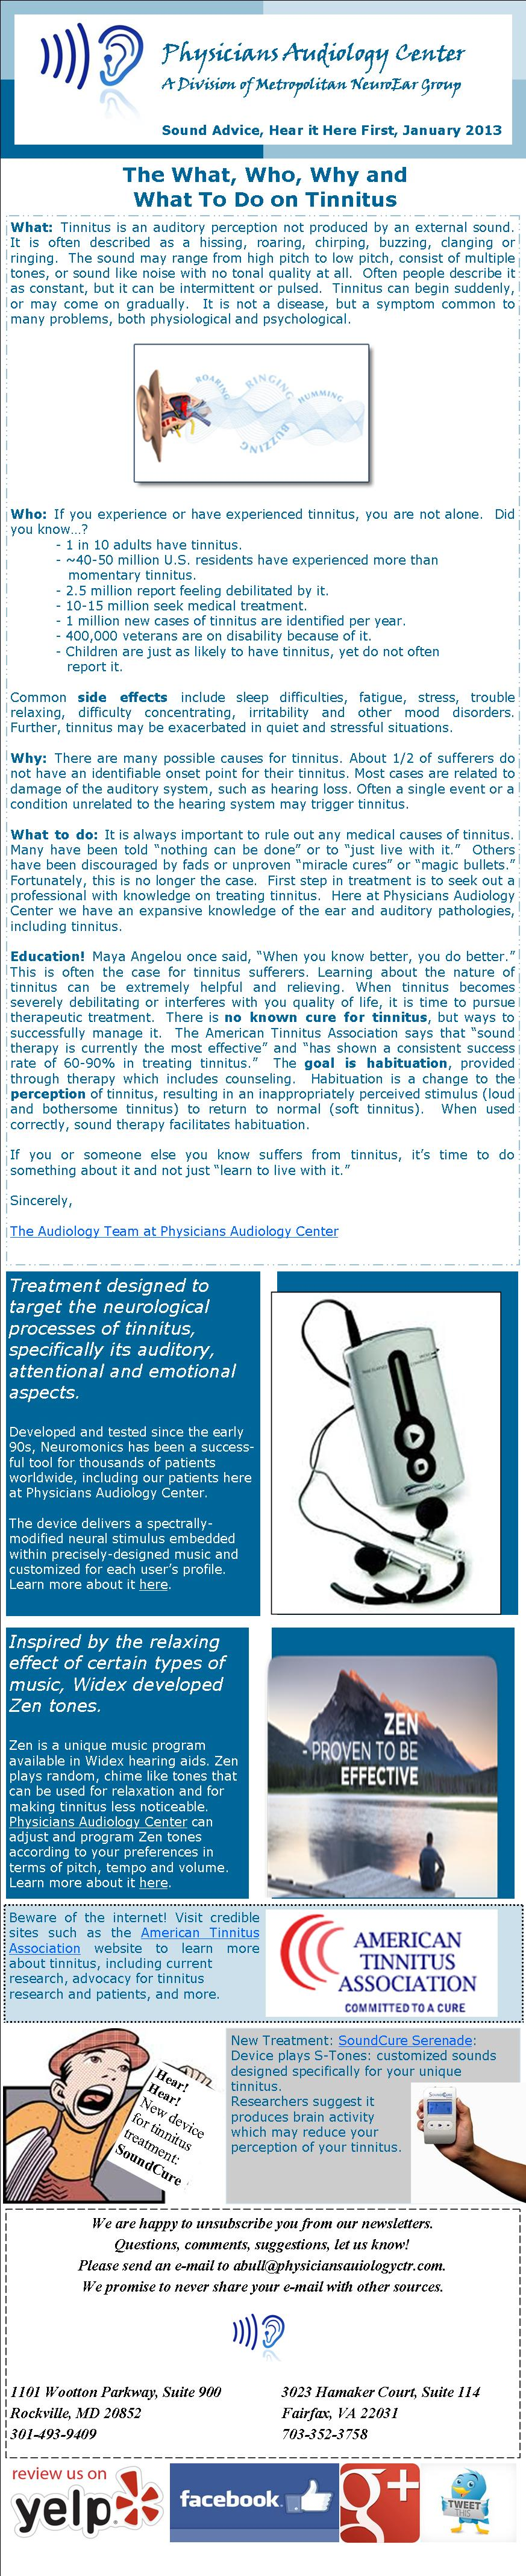 Physicians Audiology Center Newsletter Issue 2  January 2013: The What, Who, Why, and What to Do on TInnitus